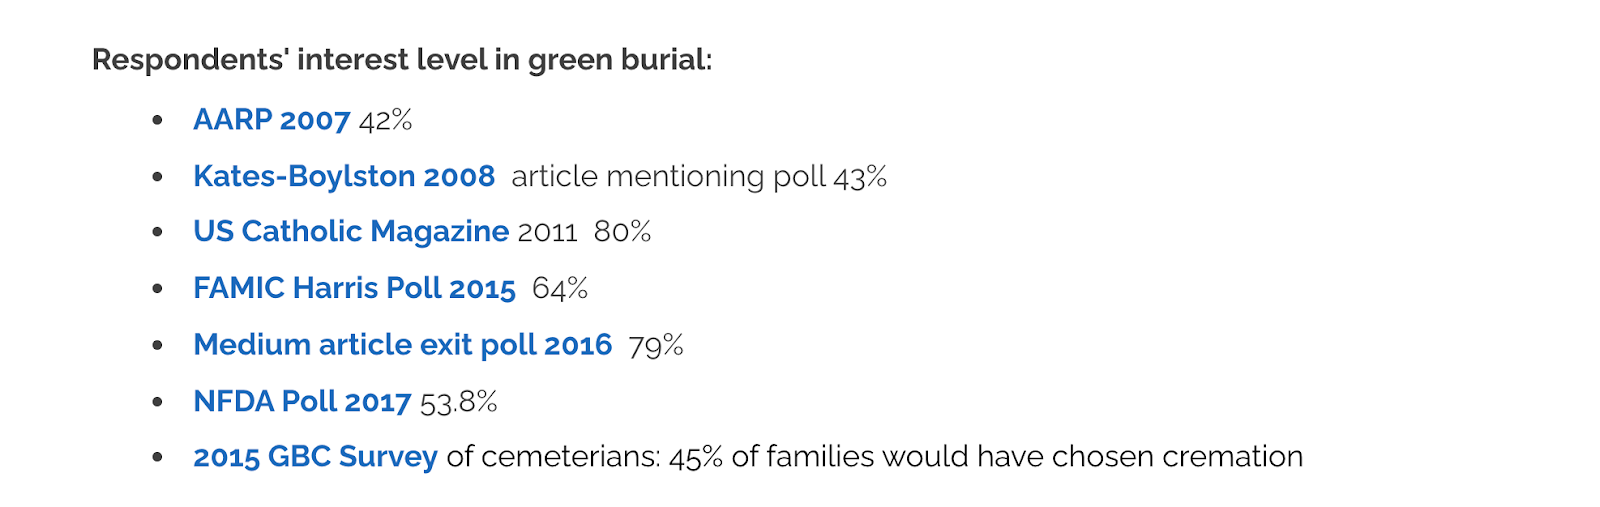 rising interest in green burial